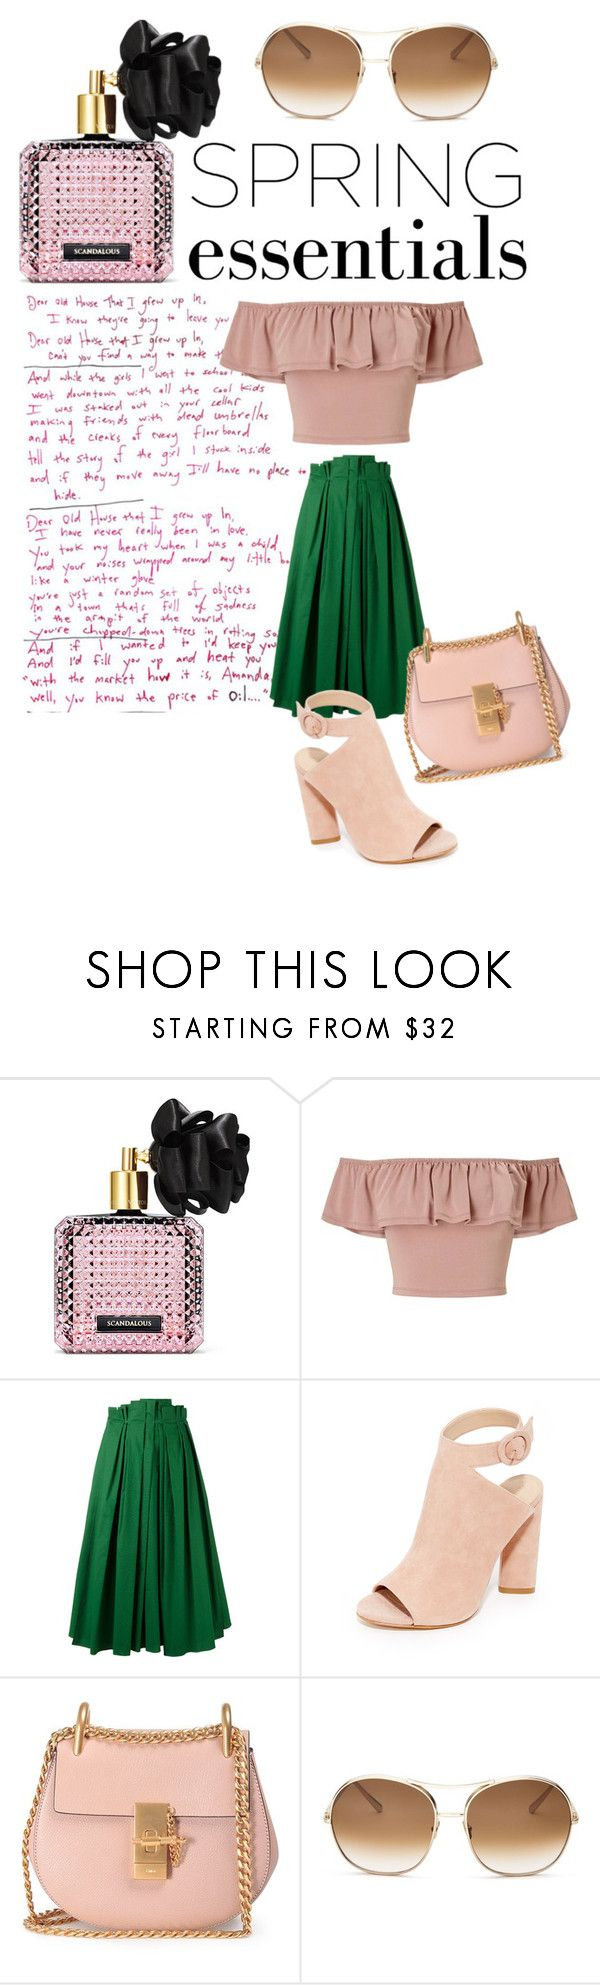 """""""my essentials in spring"""" by beemdh on Polyvore featuring Belleza, Victoria's Secret, Miss Selfridge, Rochas, Kendall + Kylie y Chloé"""